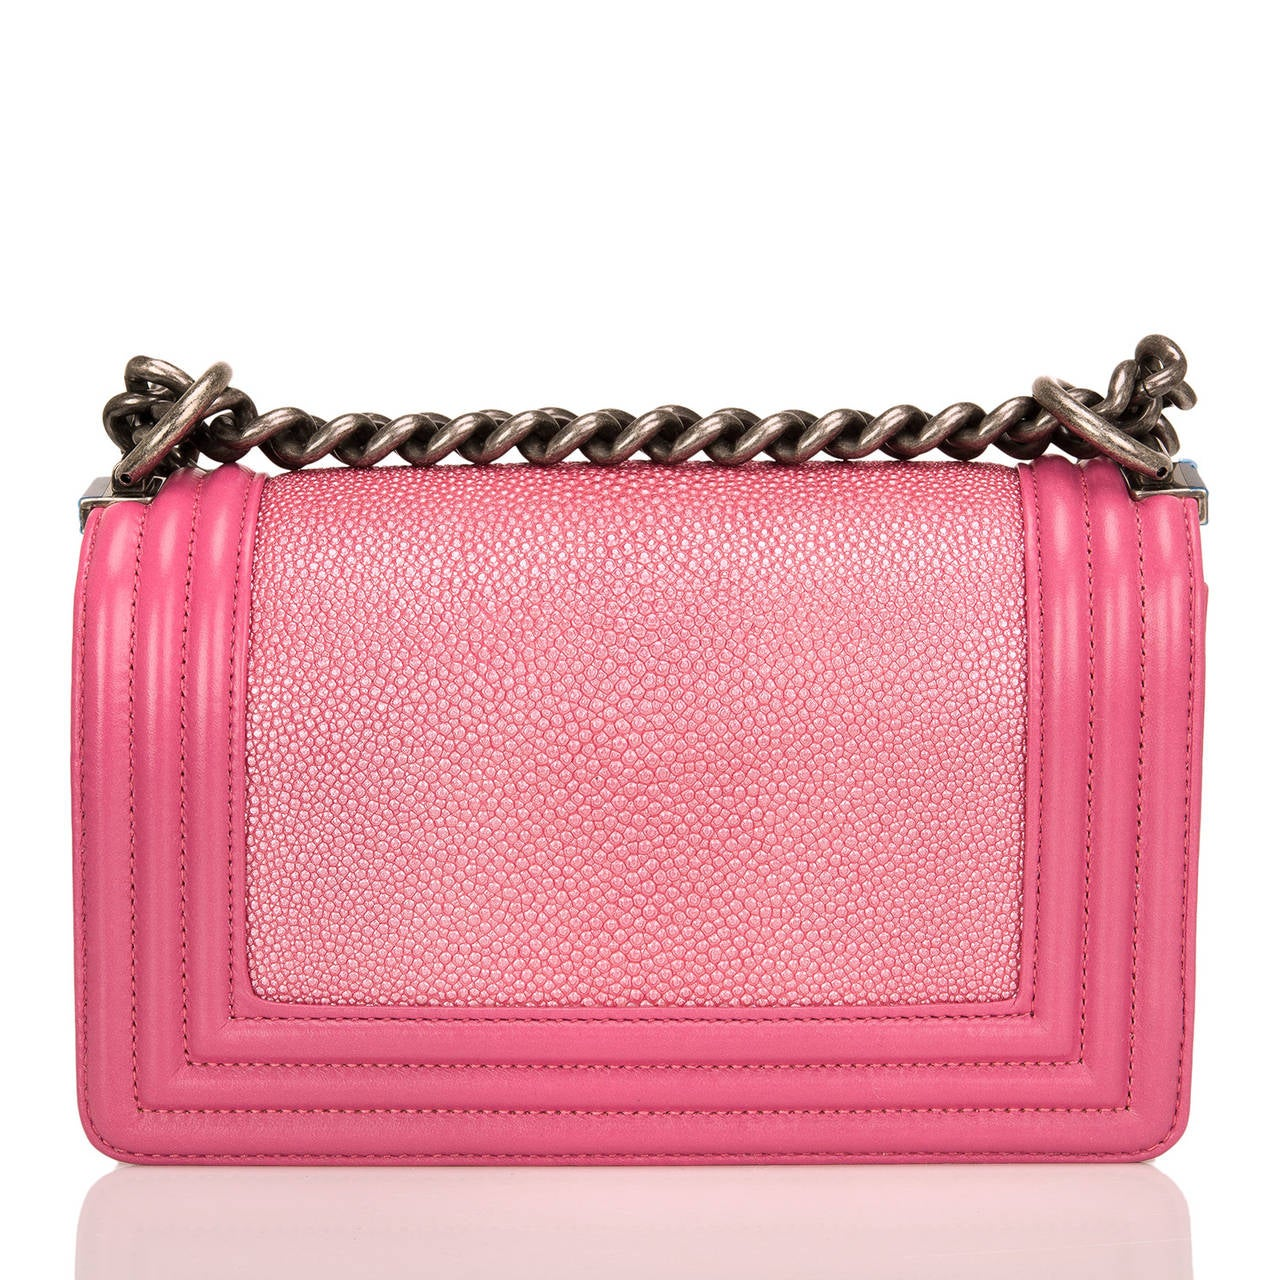 Chanel Metallic Pink Stingray Small Boy Bag In New Never_worn Condition For Sale In New York, NY